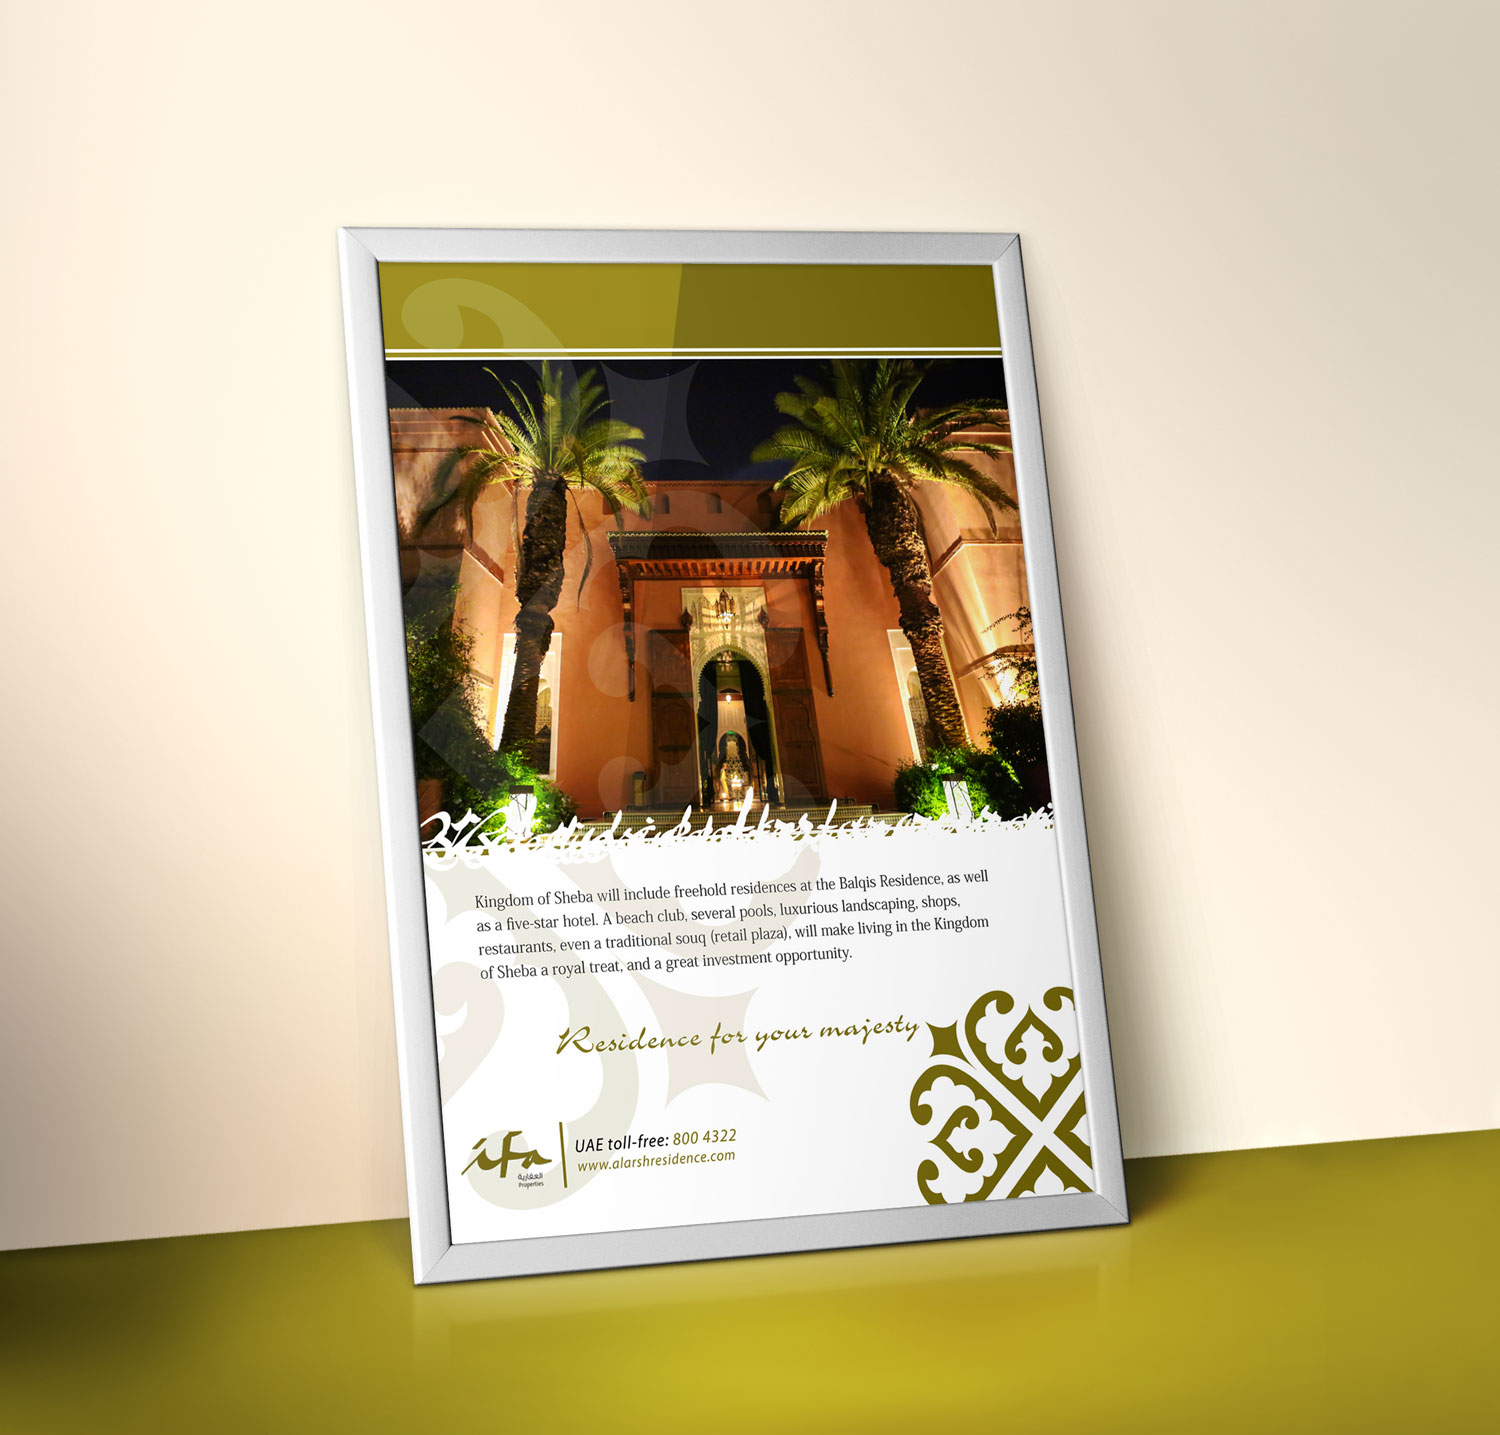 Poster mockup for IFA Villa with palm trees in front of it